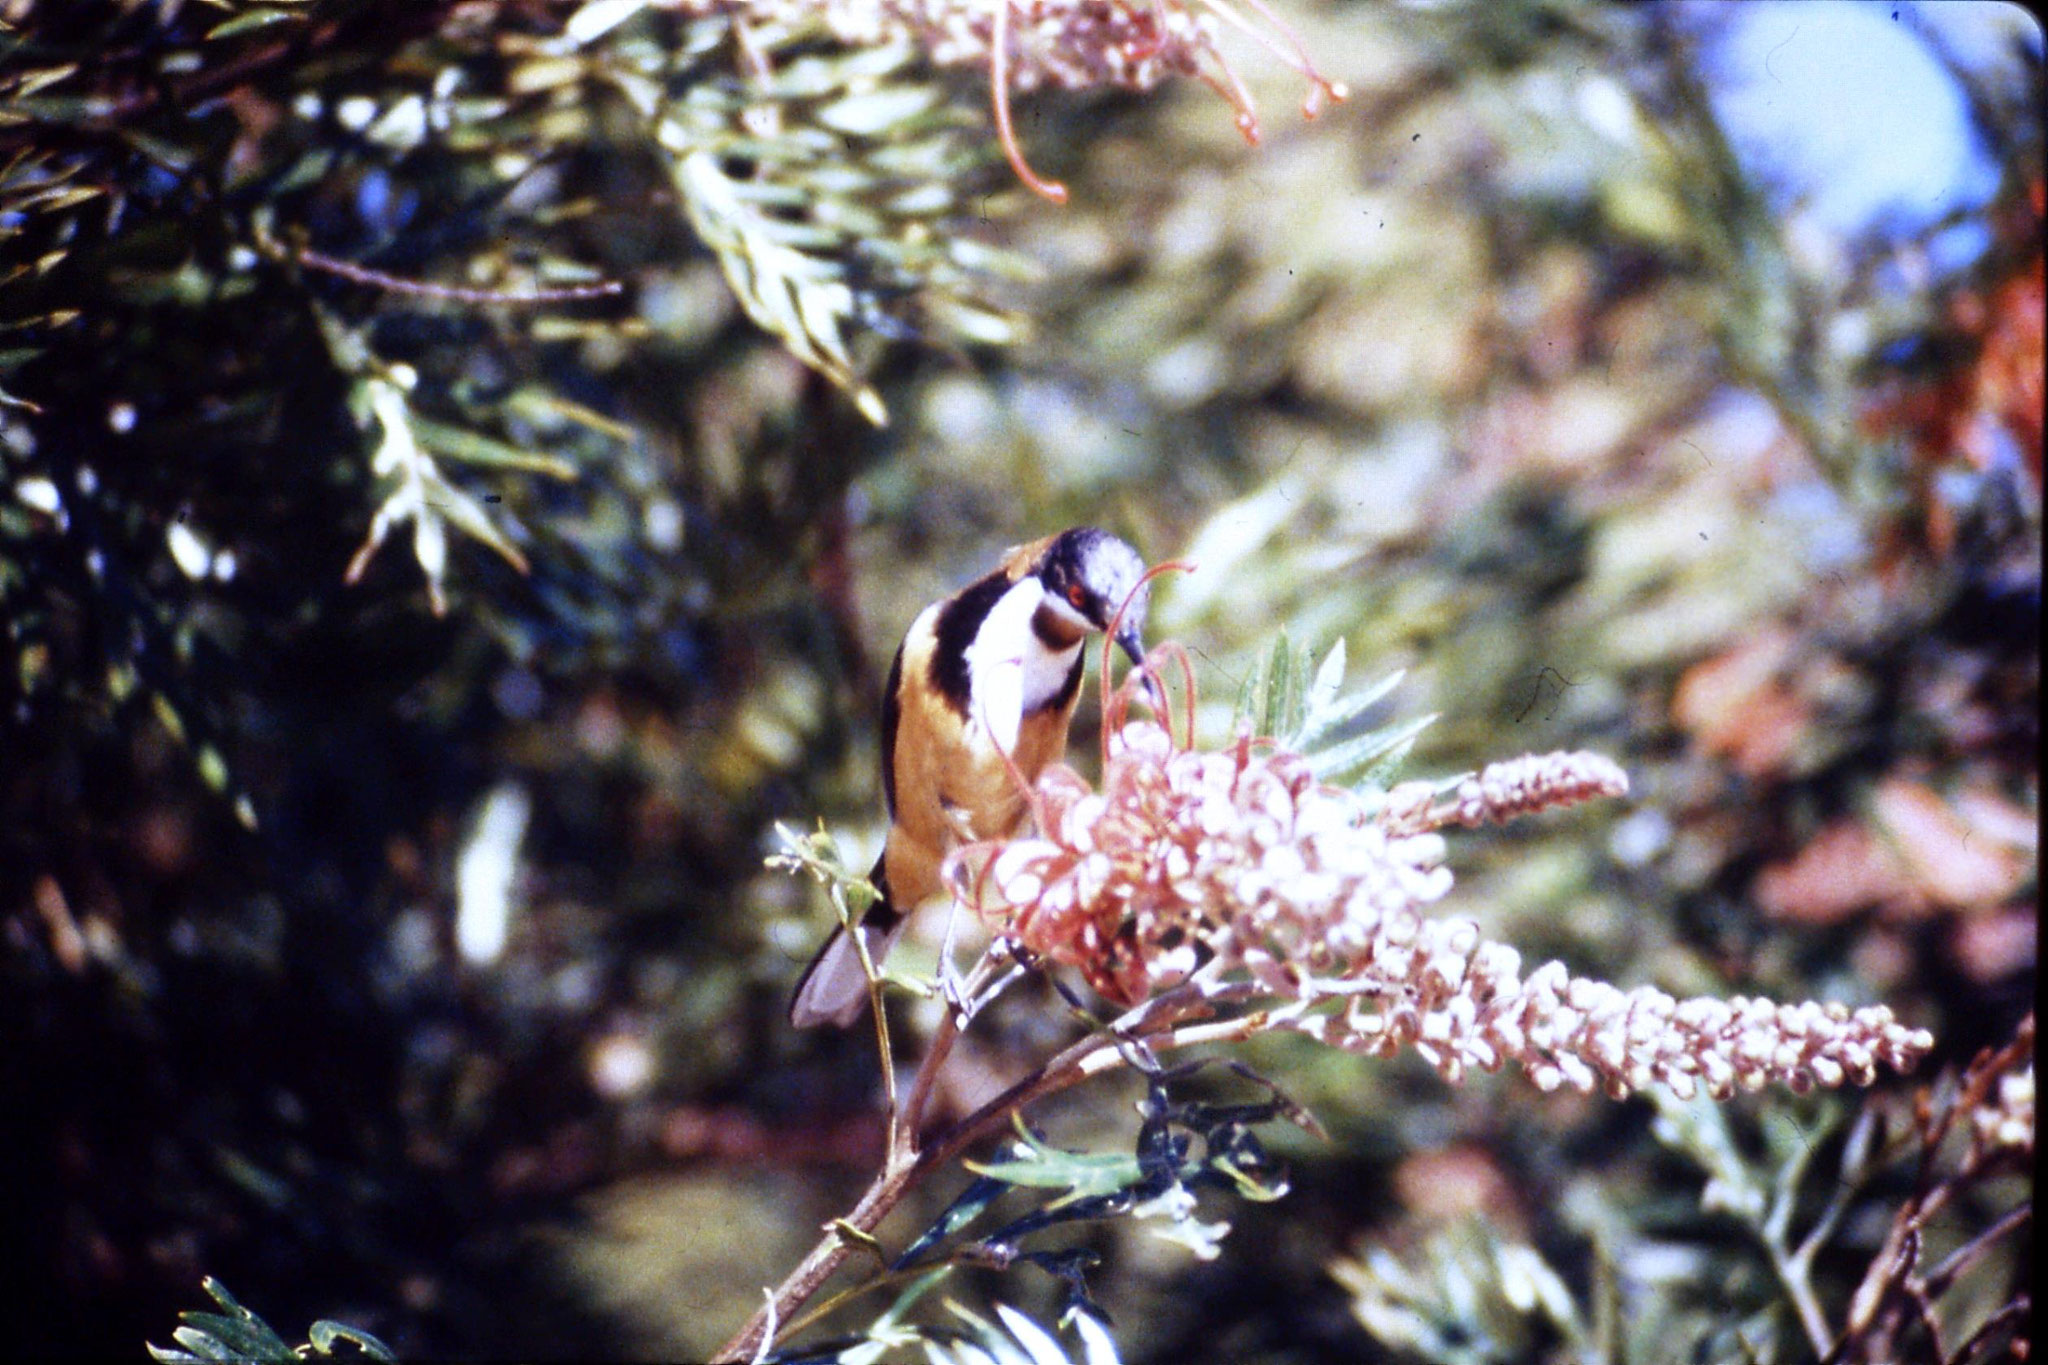 13/10/1990: 15: Mt Lamington, spinebill